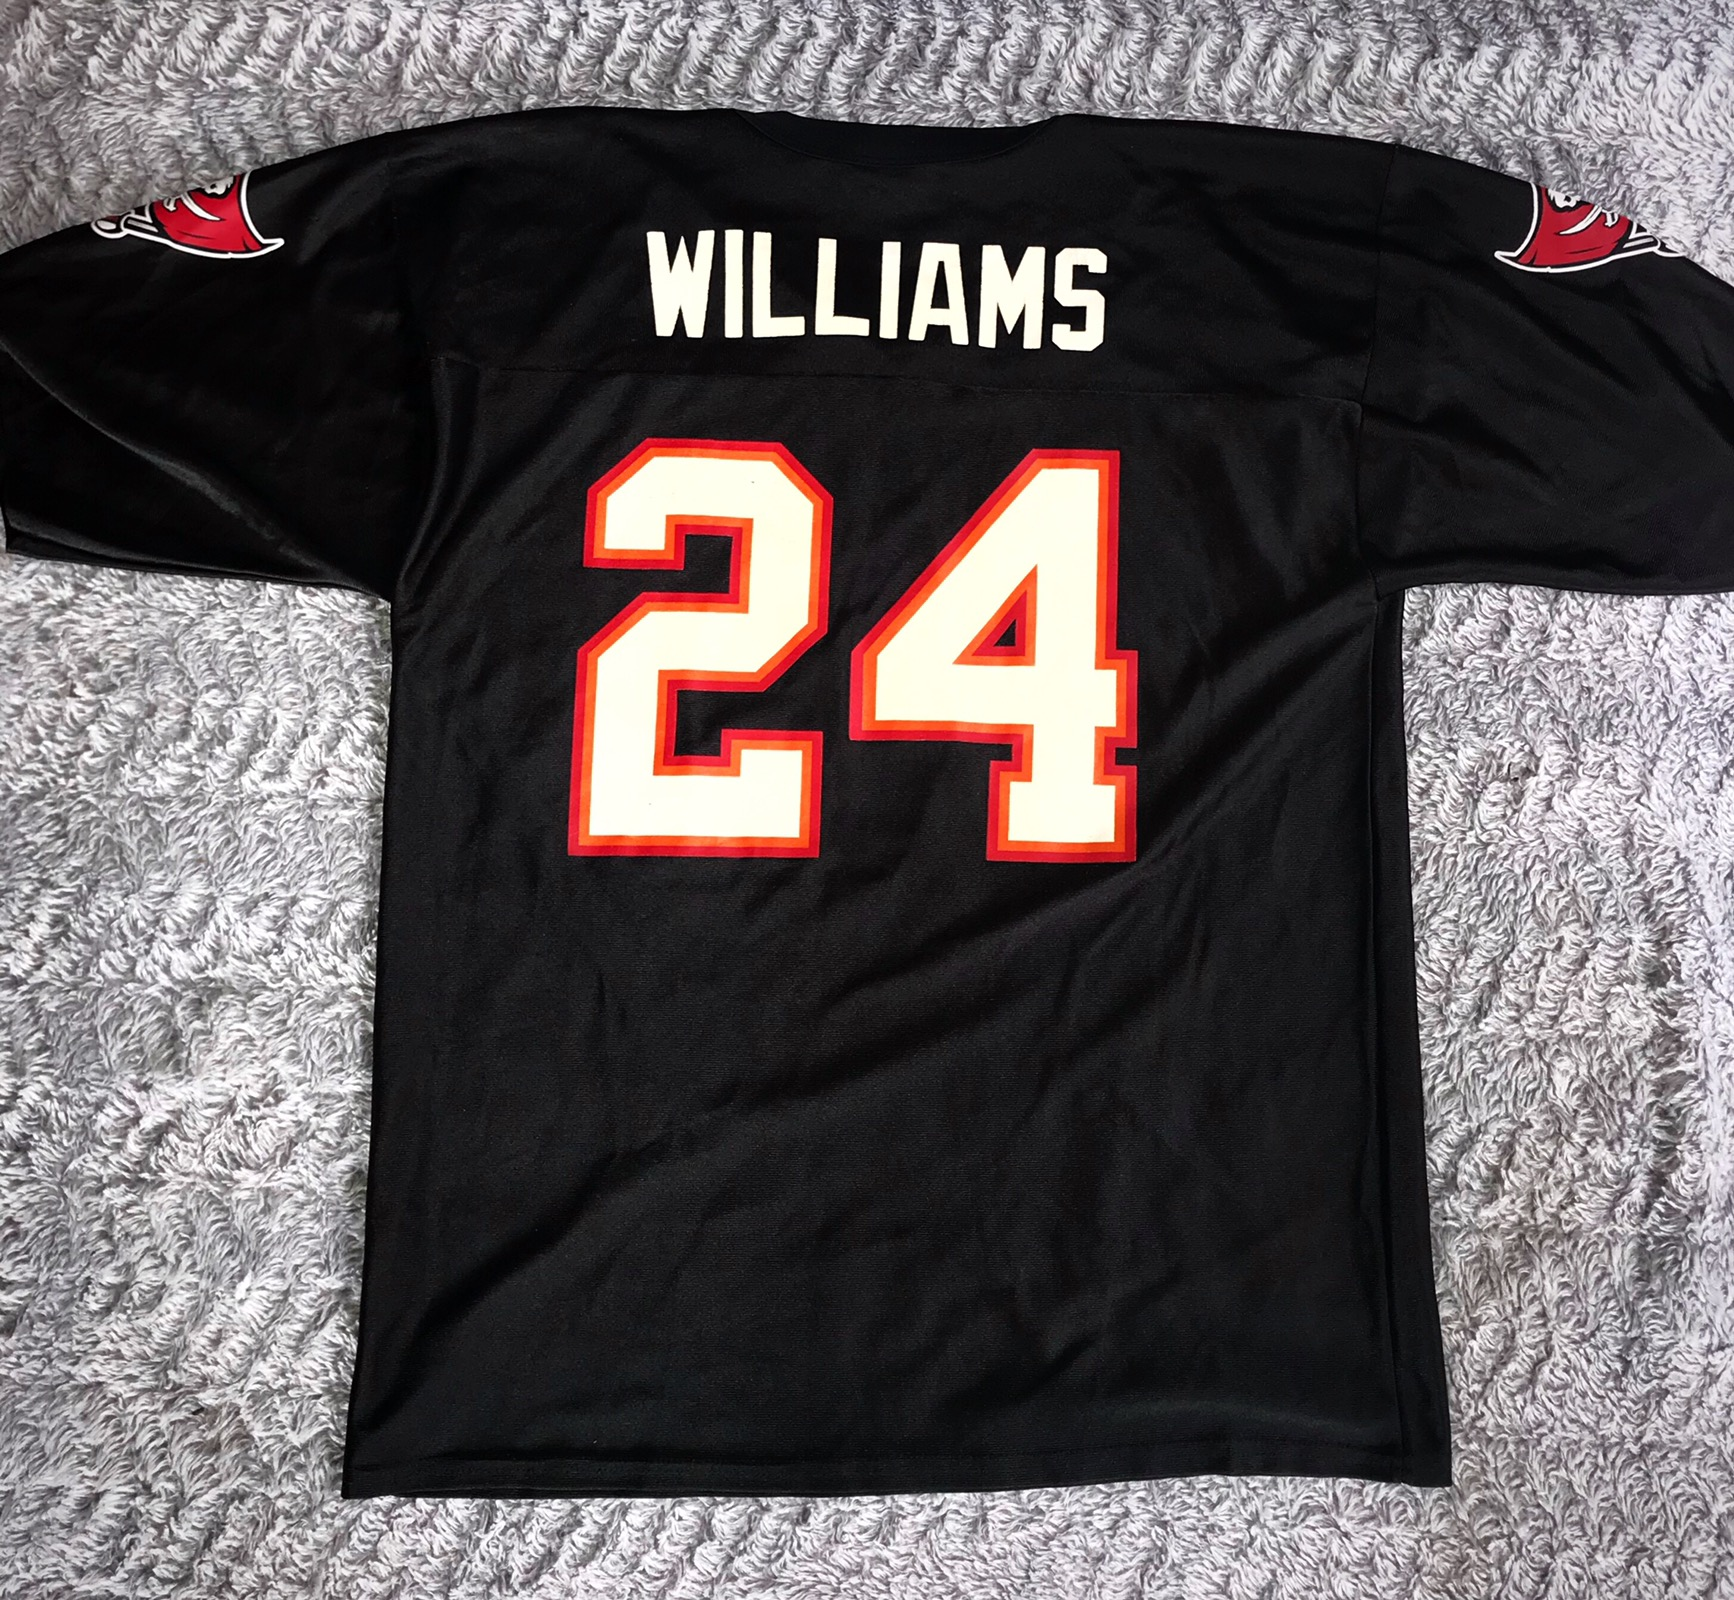 info for 62b04 3e03b VTG Cadillac Williams Tampa Bay Buccaneers #24 XL Black Jersey NFL Players  Inc